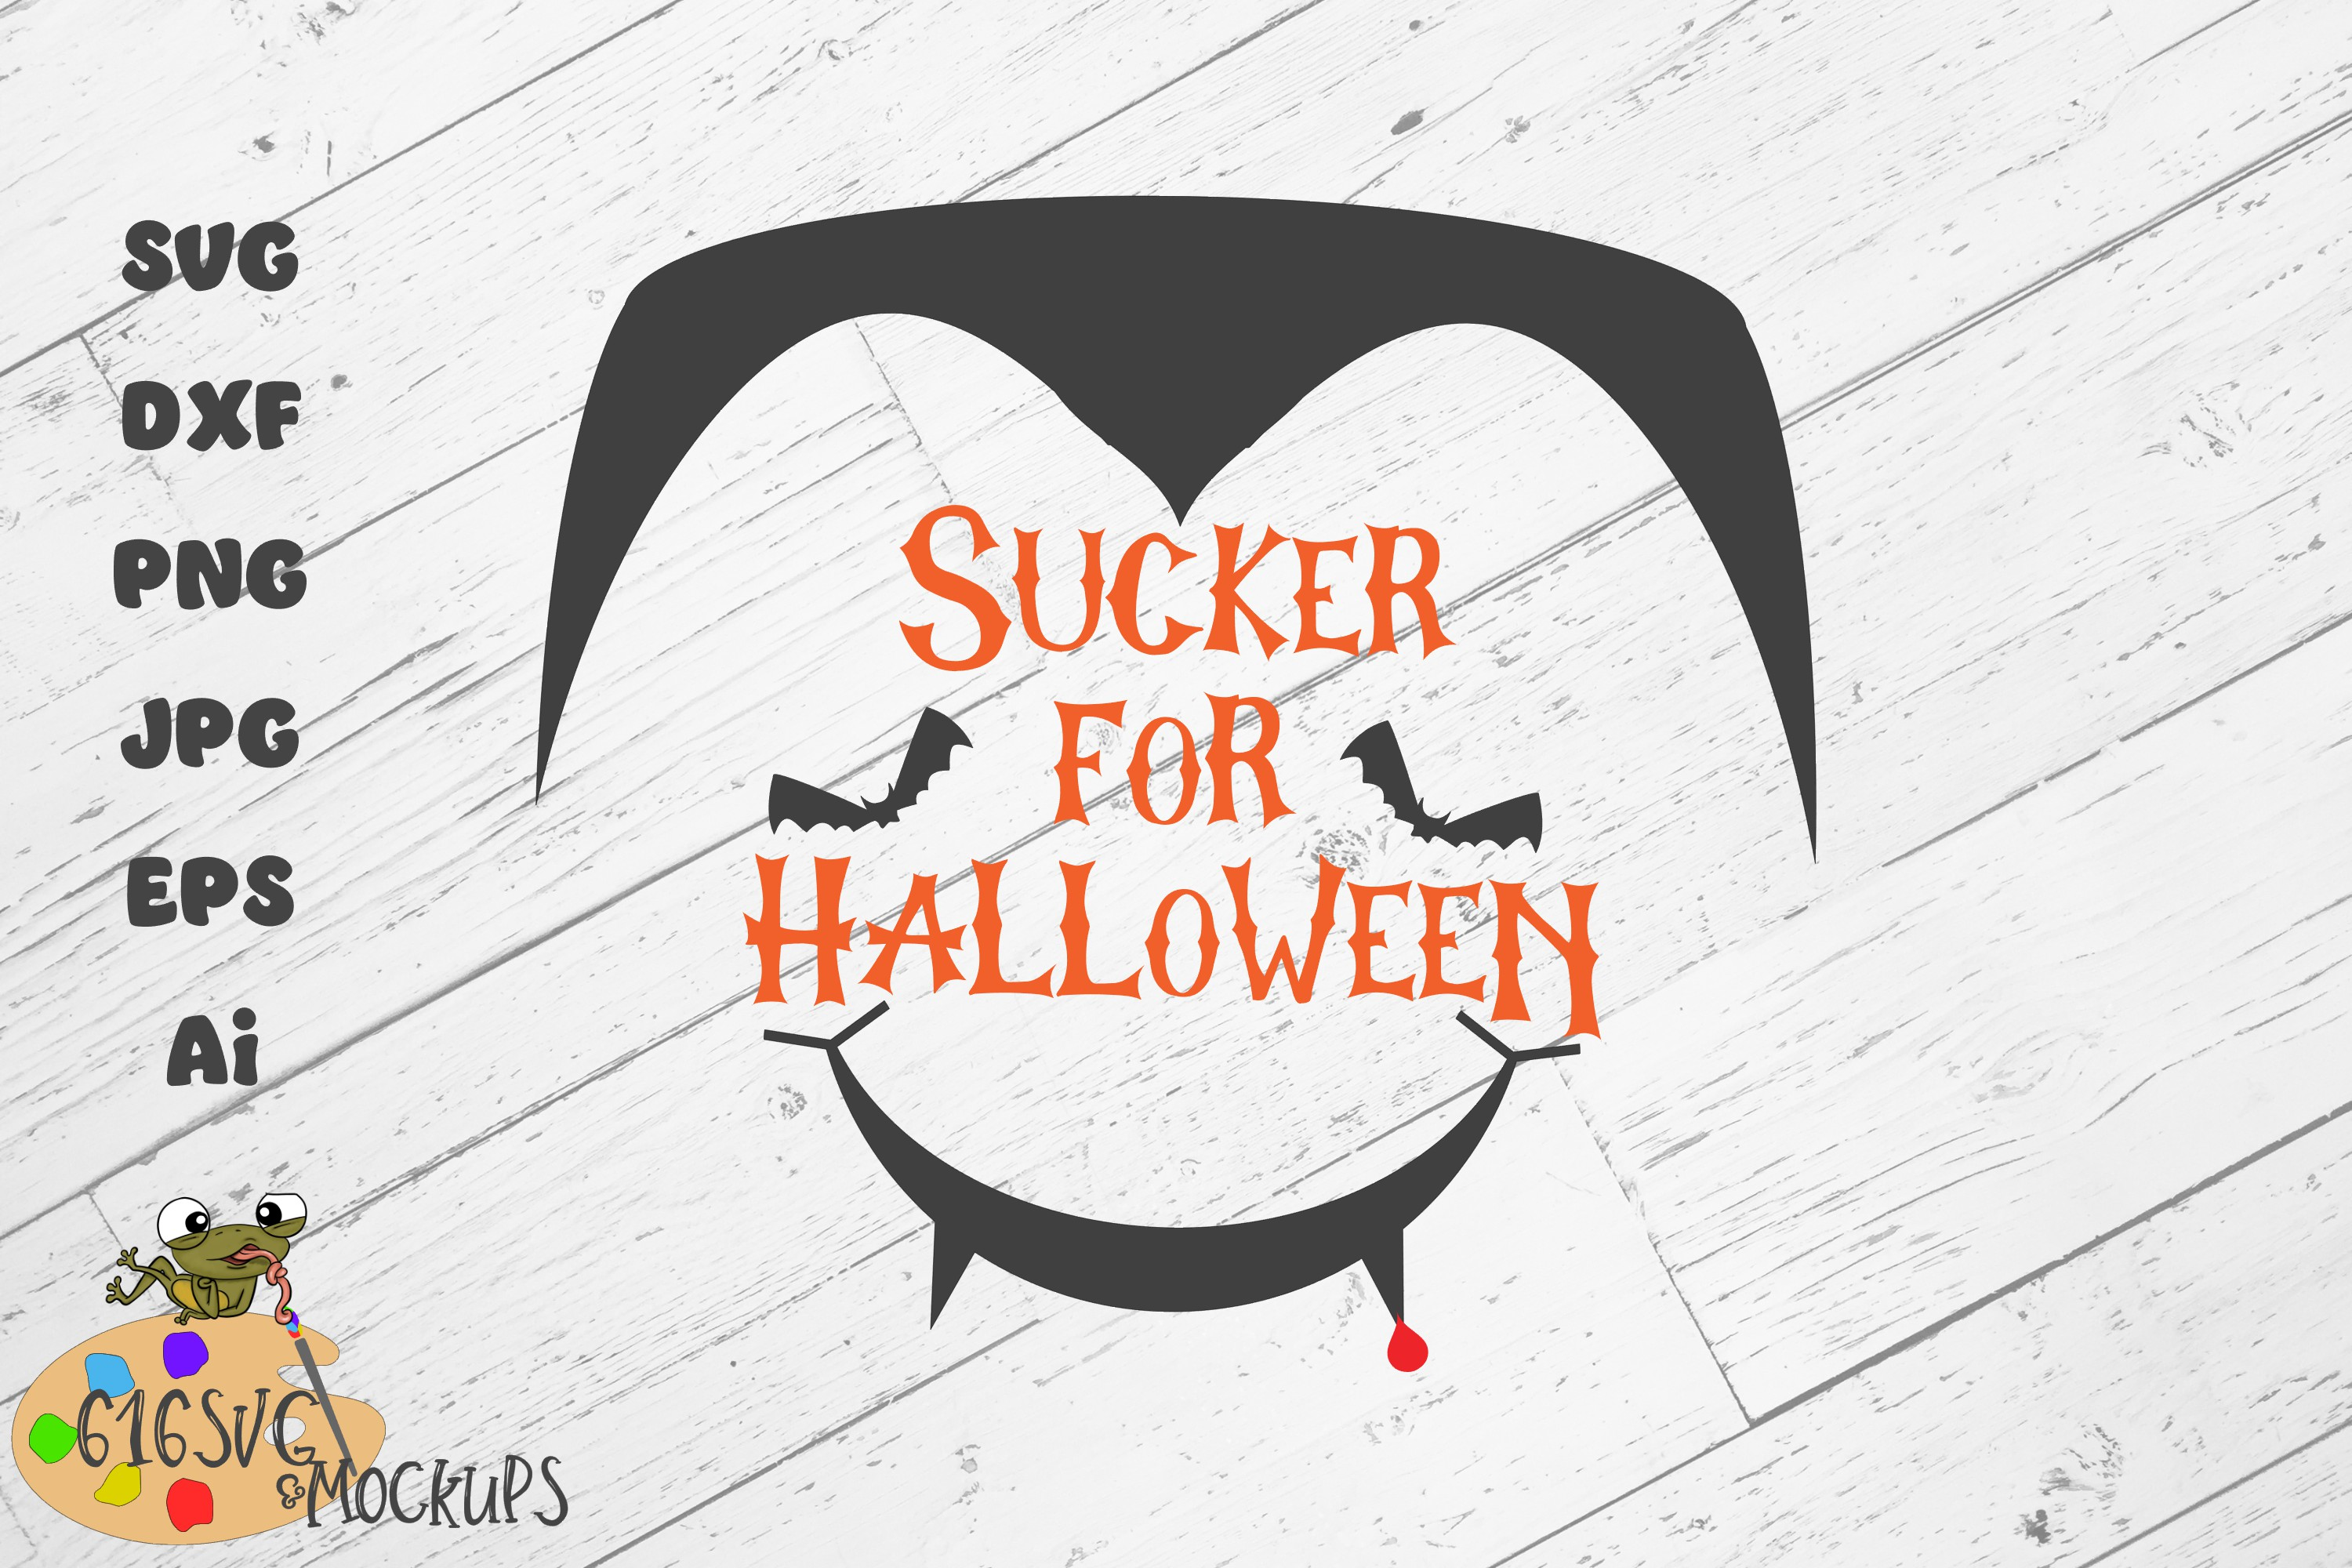 Sucker For Halloween SVG, DXF, Ai, PNG example image 3